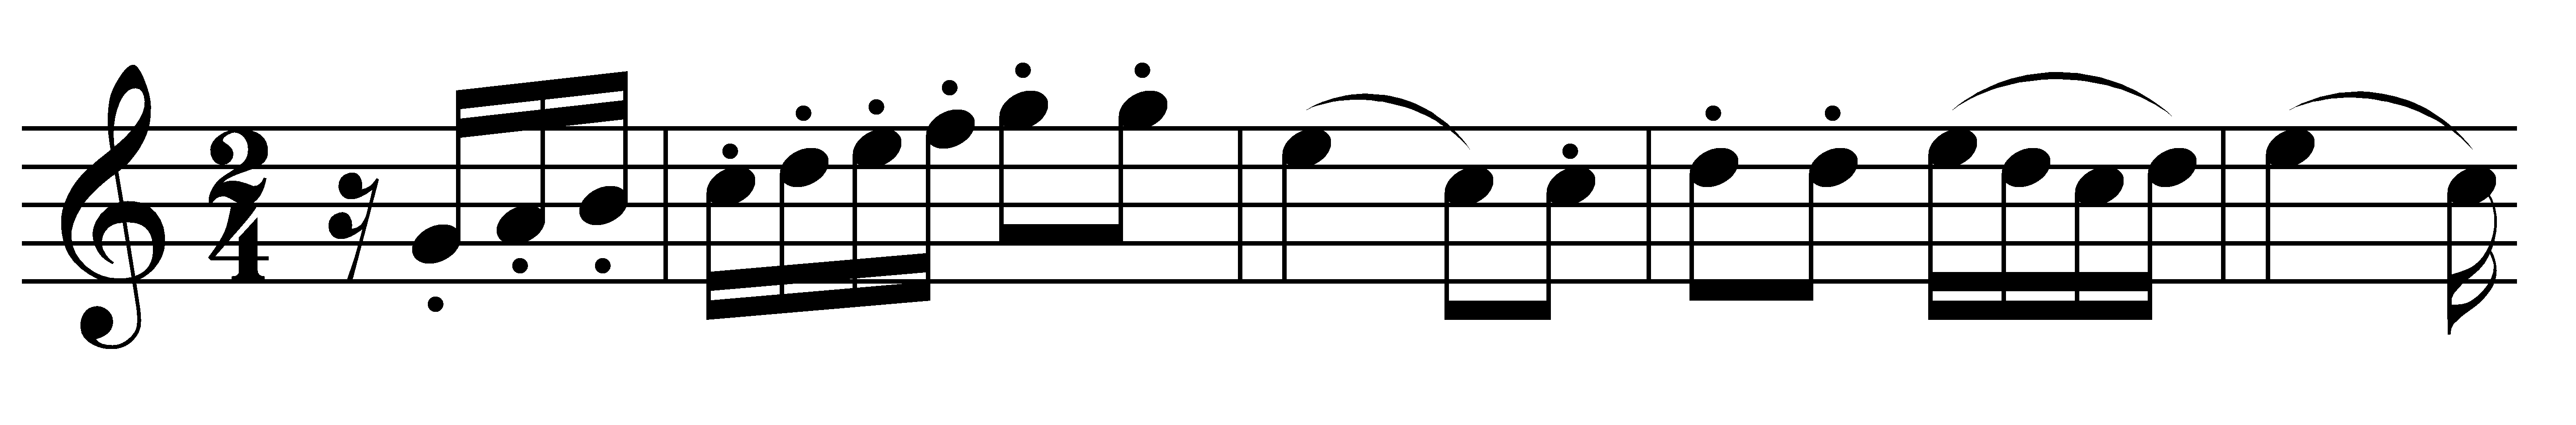 File:Beethoven 1st Symphony 4th mov.png - PNG Symphony